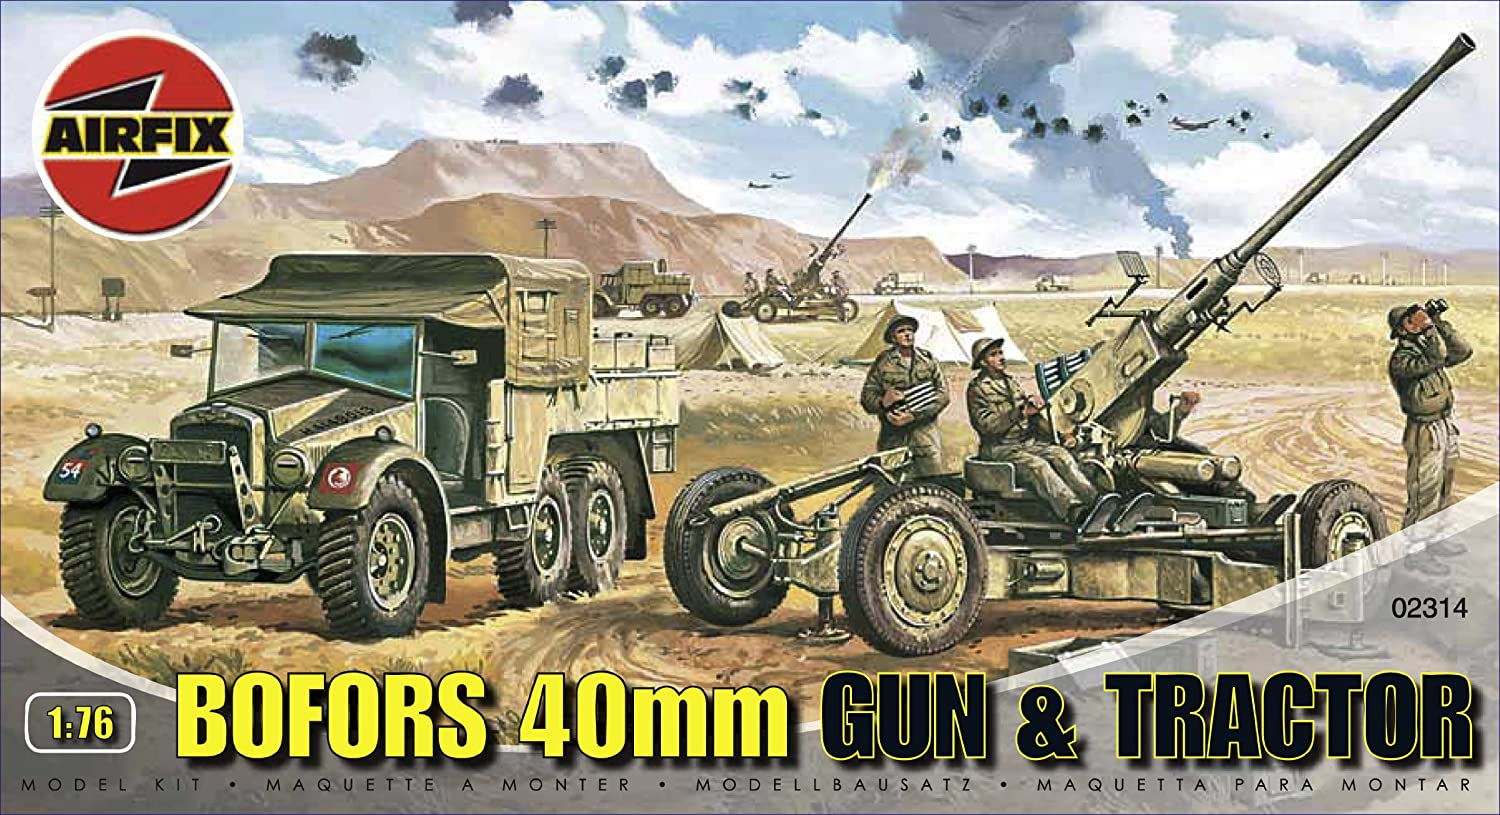 Airfix A02314 Bofors 40mm Gun & Tractor 1:76 Scale Series 2 Plastic Model Kit B0002HZW6I Arts and Crafts Arts_and_Crafts Craft Kits